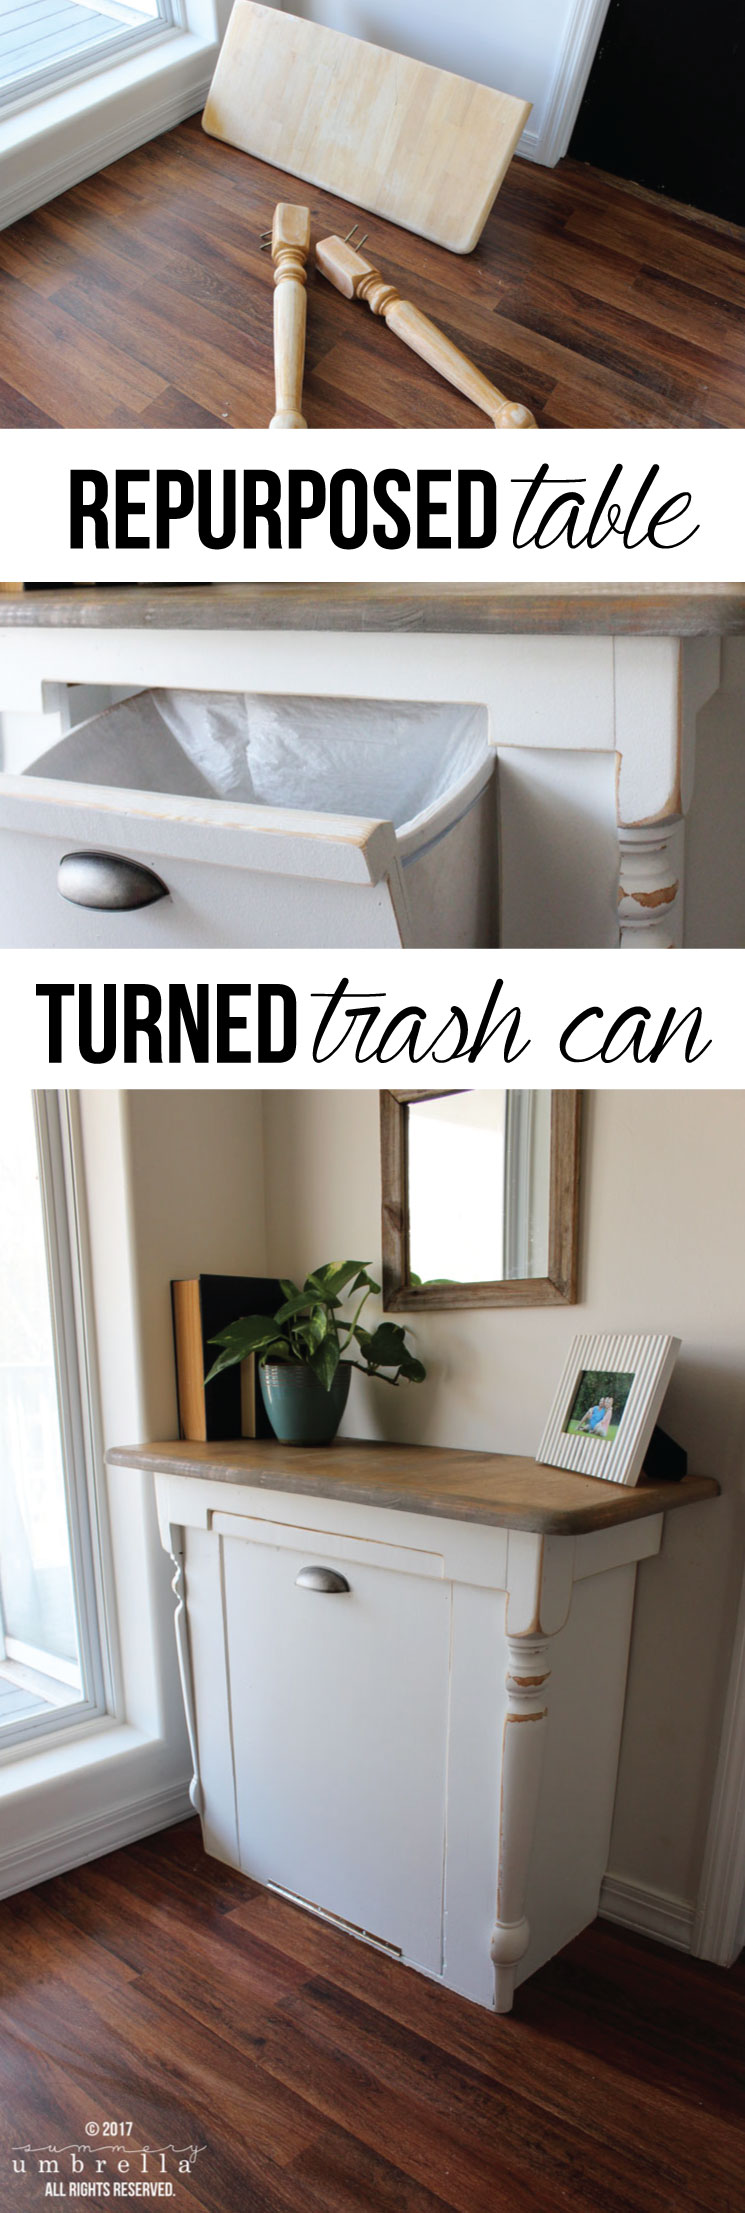 Ever wondered what you could do with that old table you have lying around? Well, you could give it a makeover and turn it into a DIY wood tilt out trash can for your kitchen! #furniture #furnituremakeover #TheSummeryUmbrella #LZCathcart